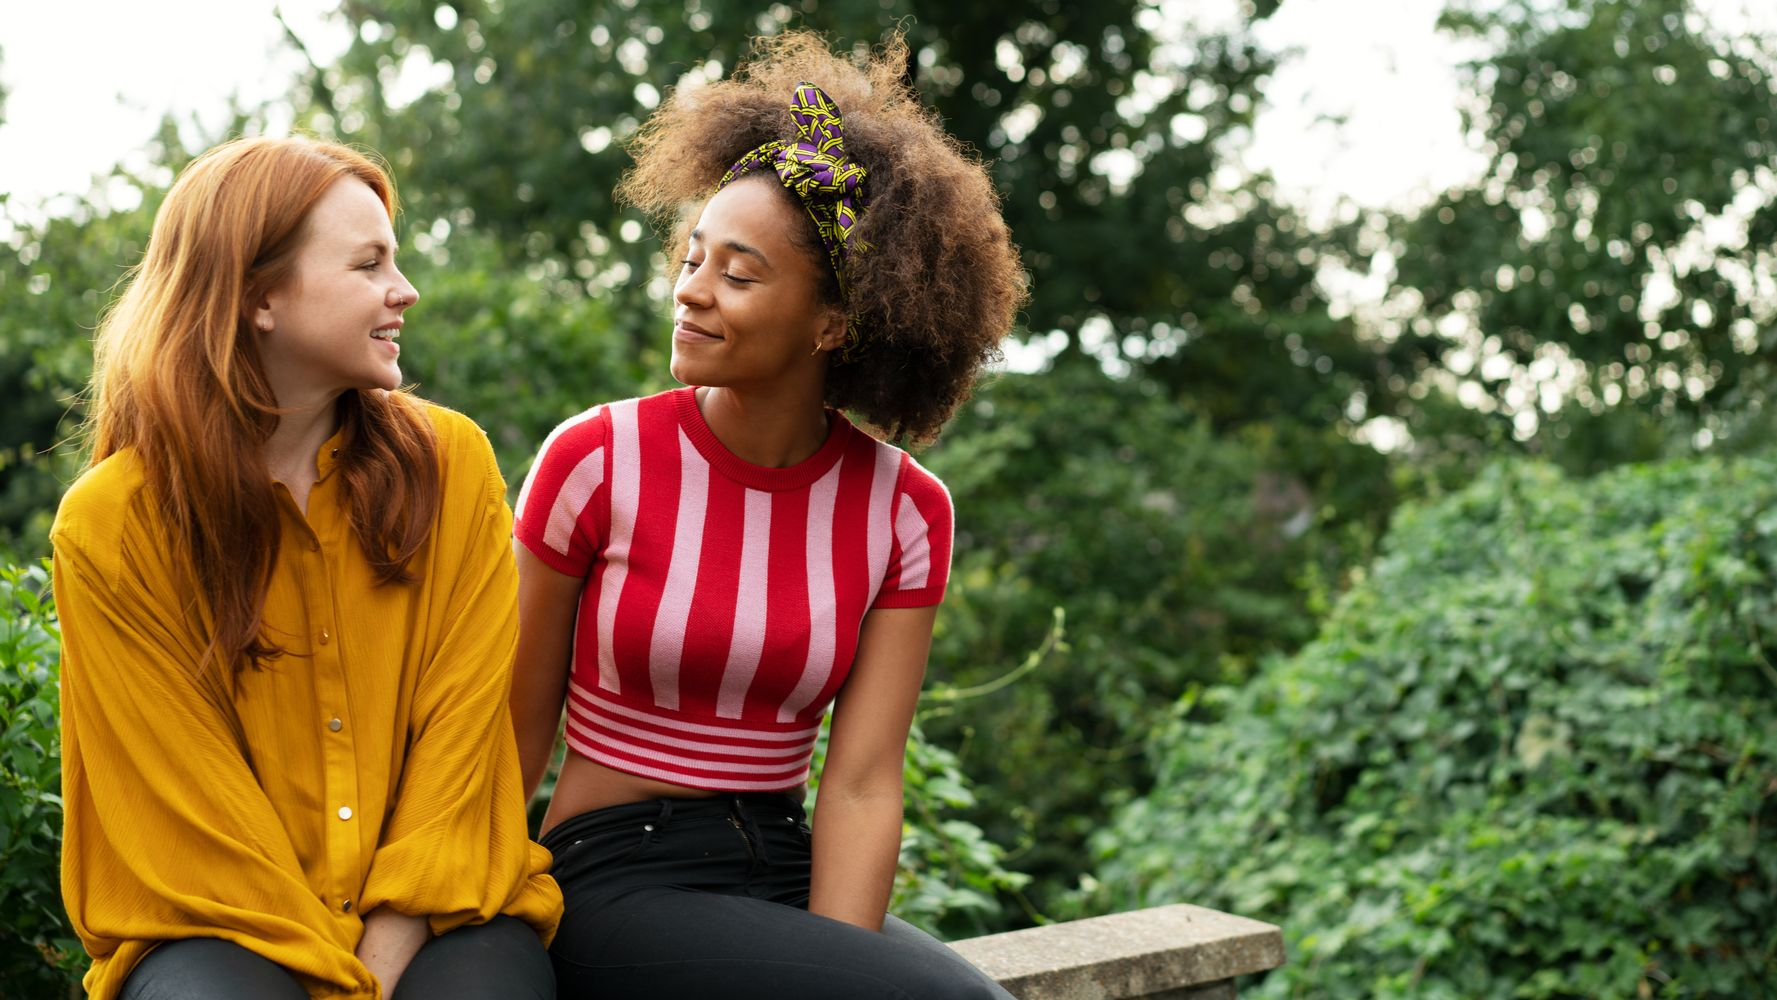 How To Talk To Your Friend About Their Questionable Dating Behaviors